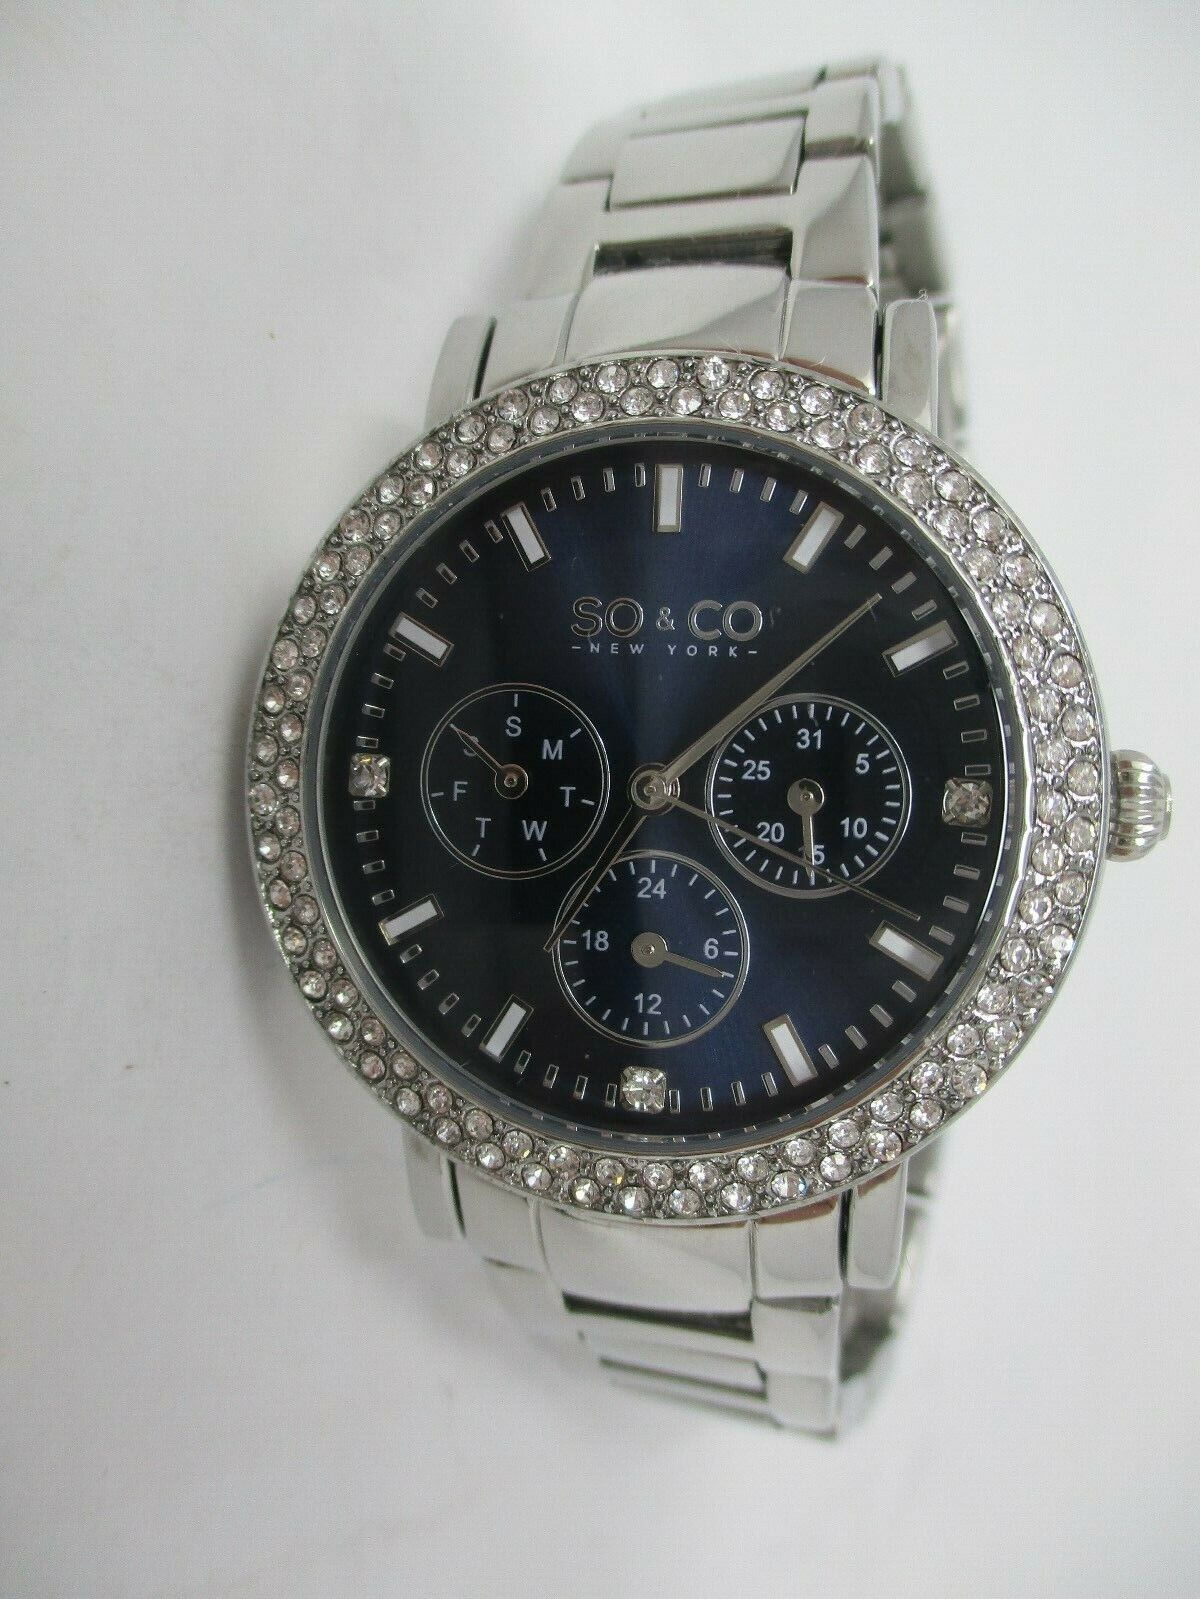 So & Co Women's Stainless Steel Watch With Crystal Accents